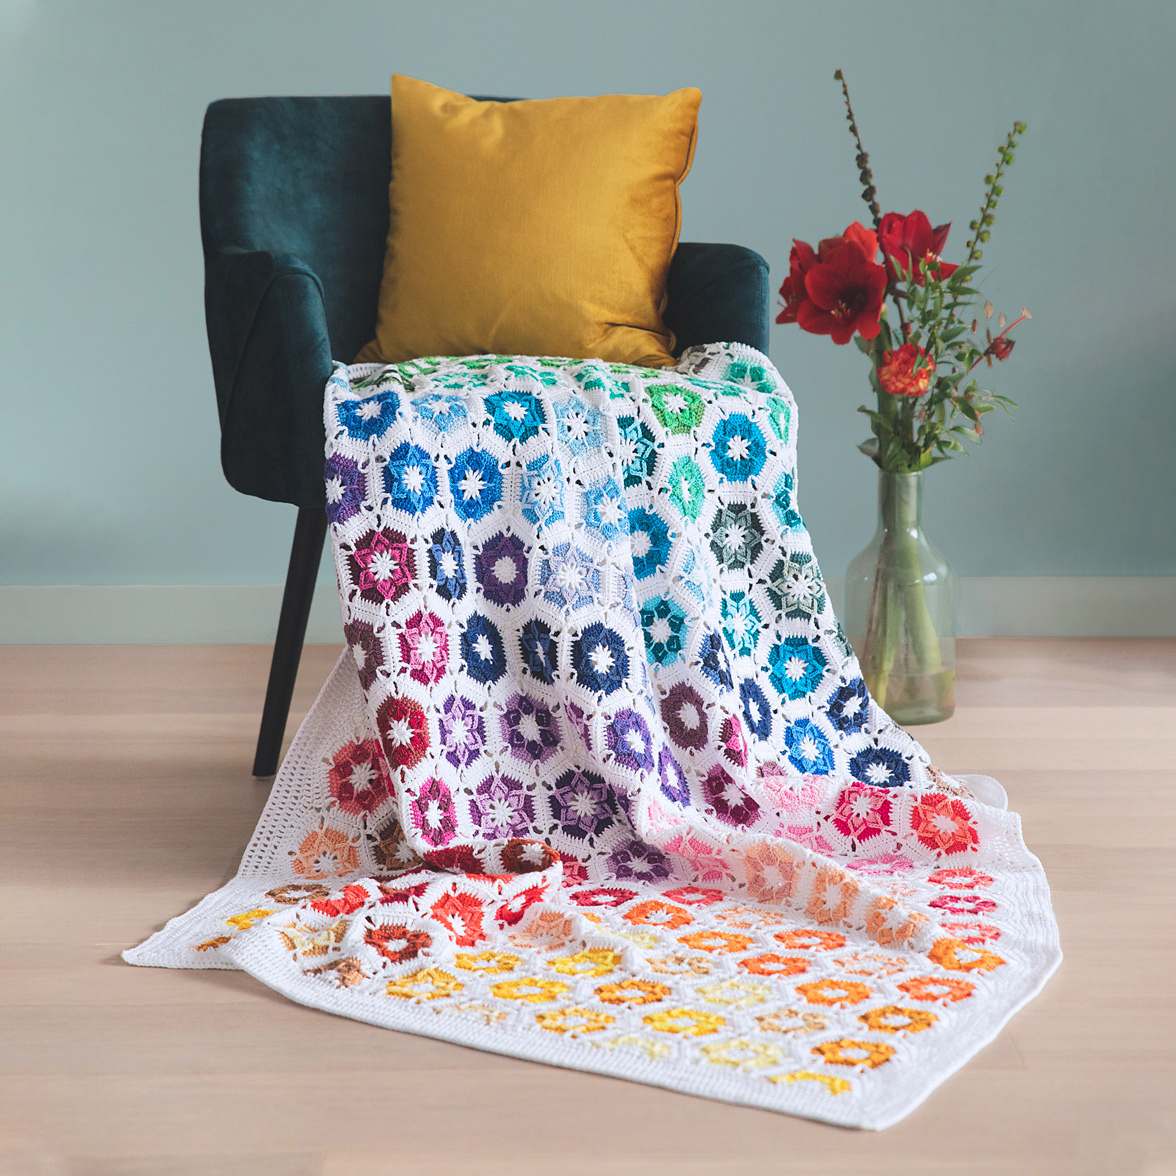 colorful crochet blanket on a chair